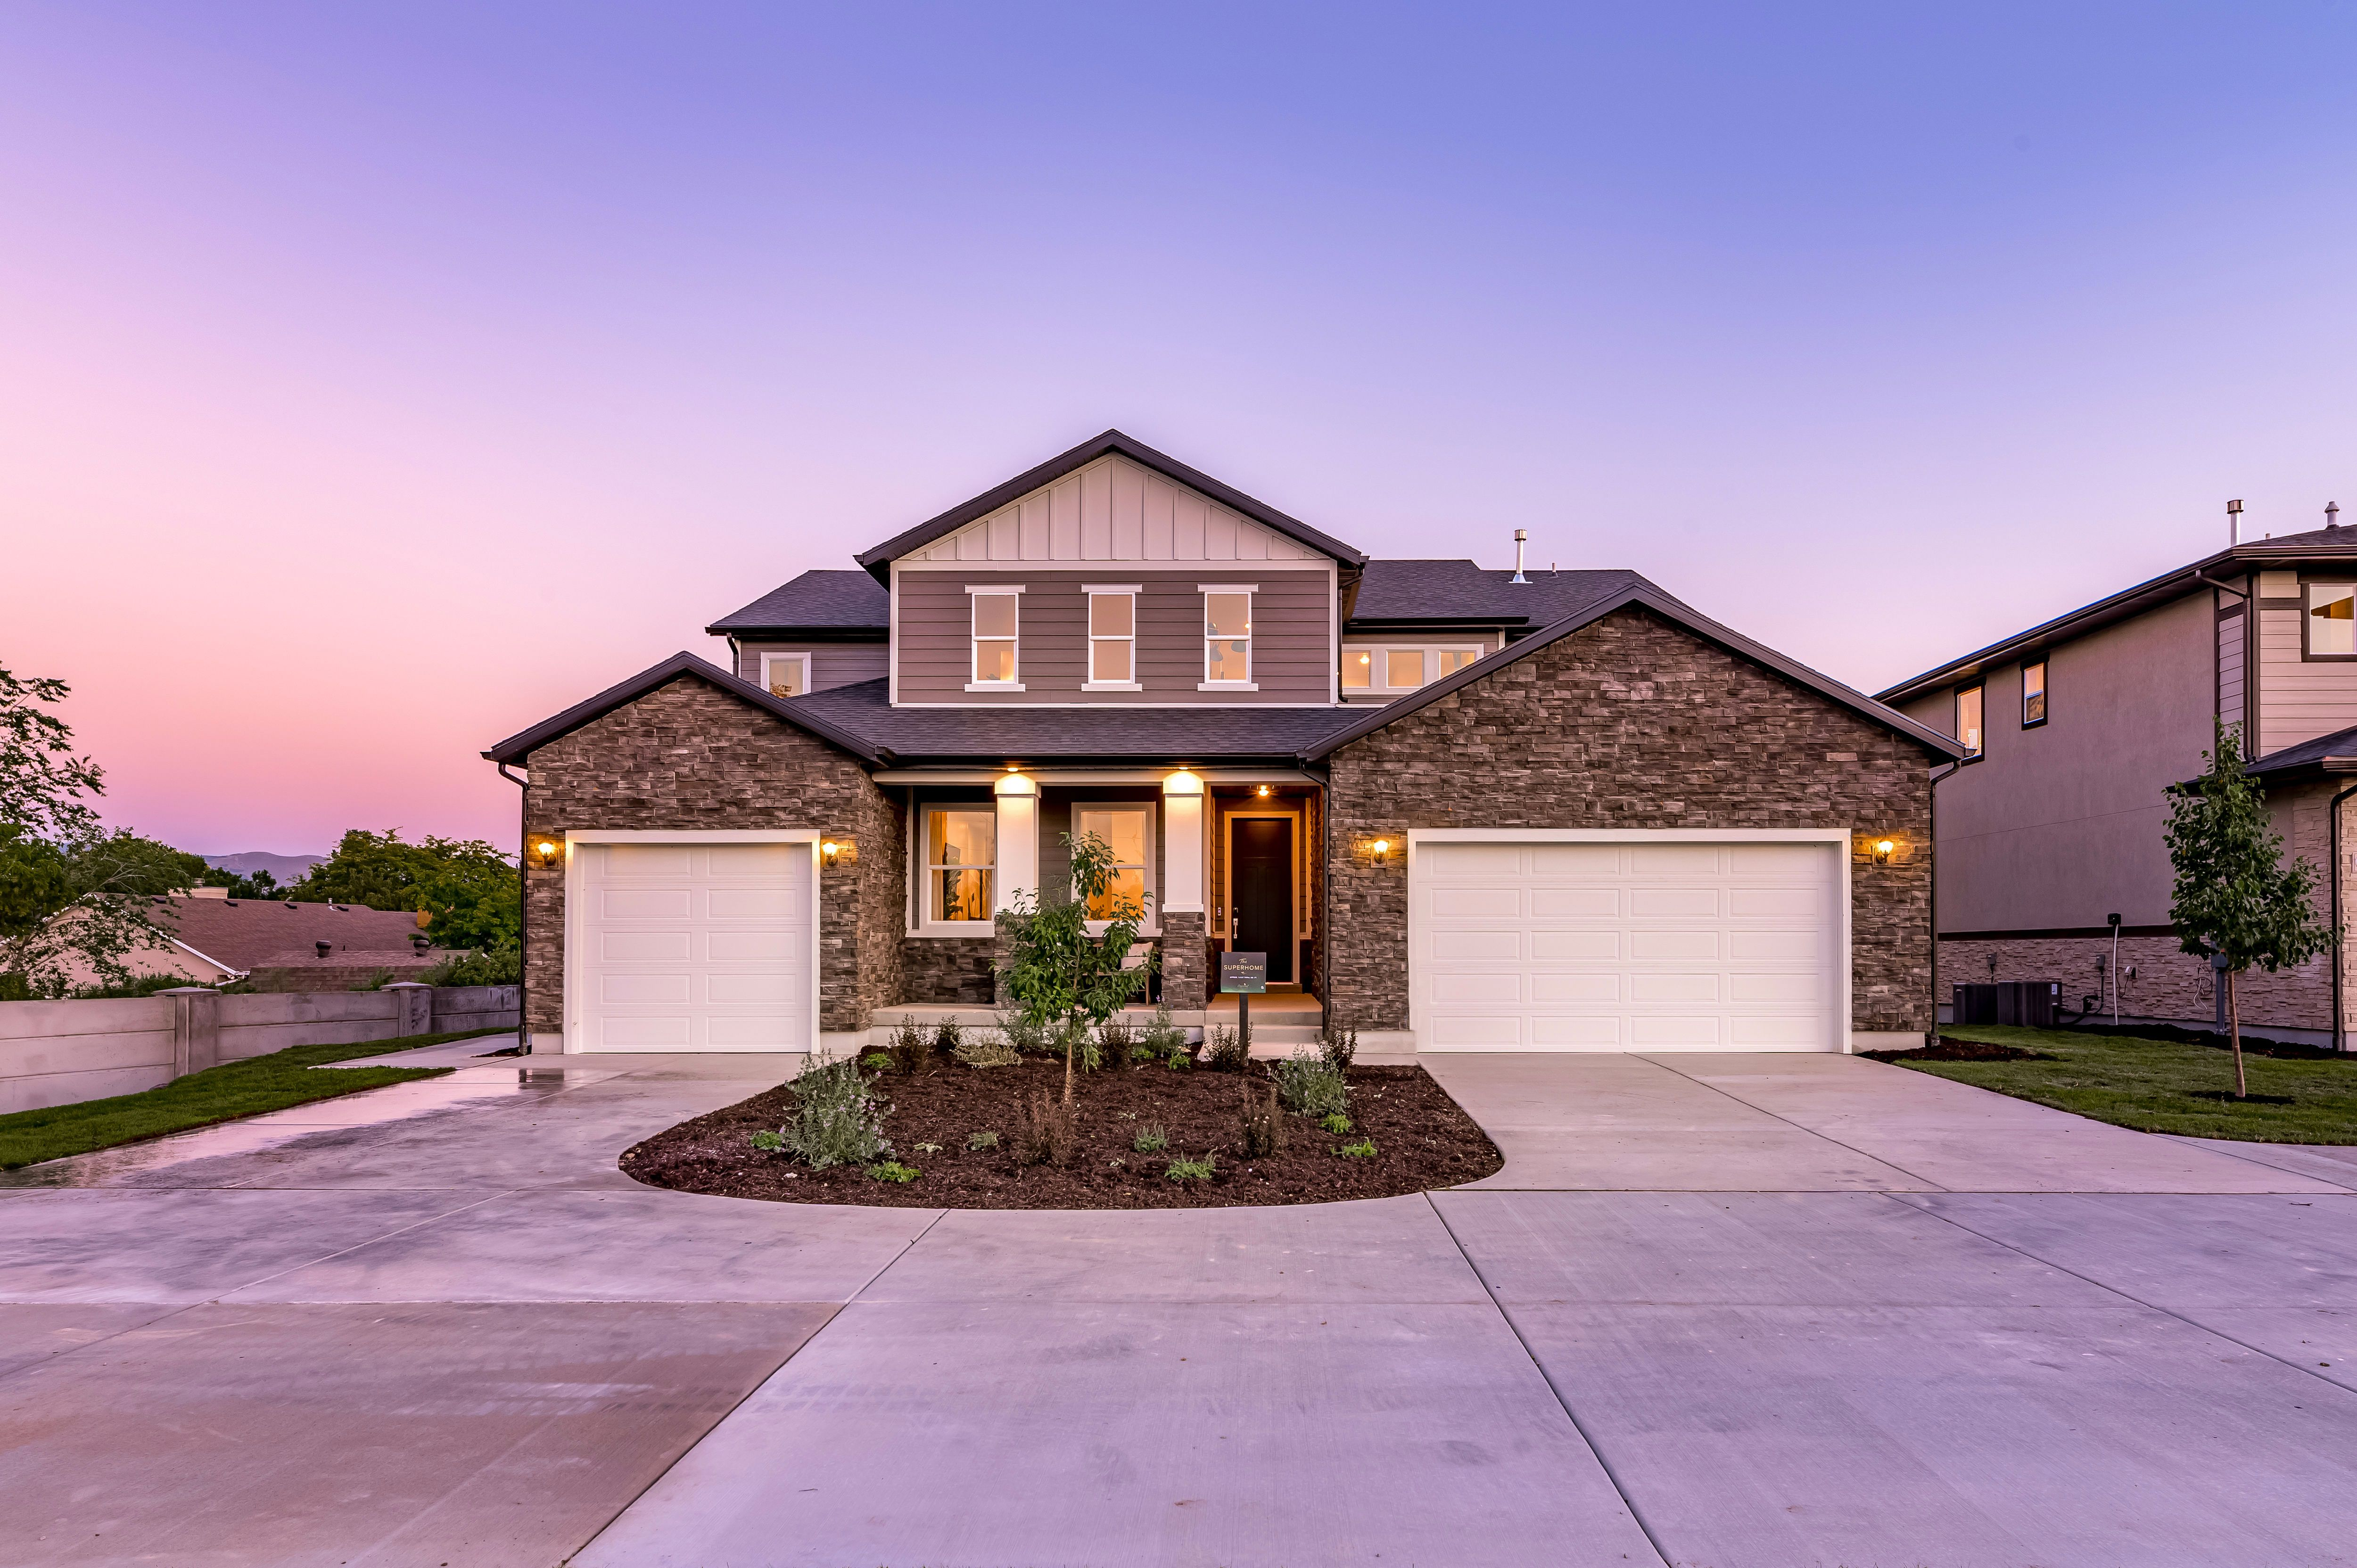 Superhome In 2021 New House Plans New Homes For Sale Model Homes